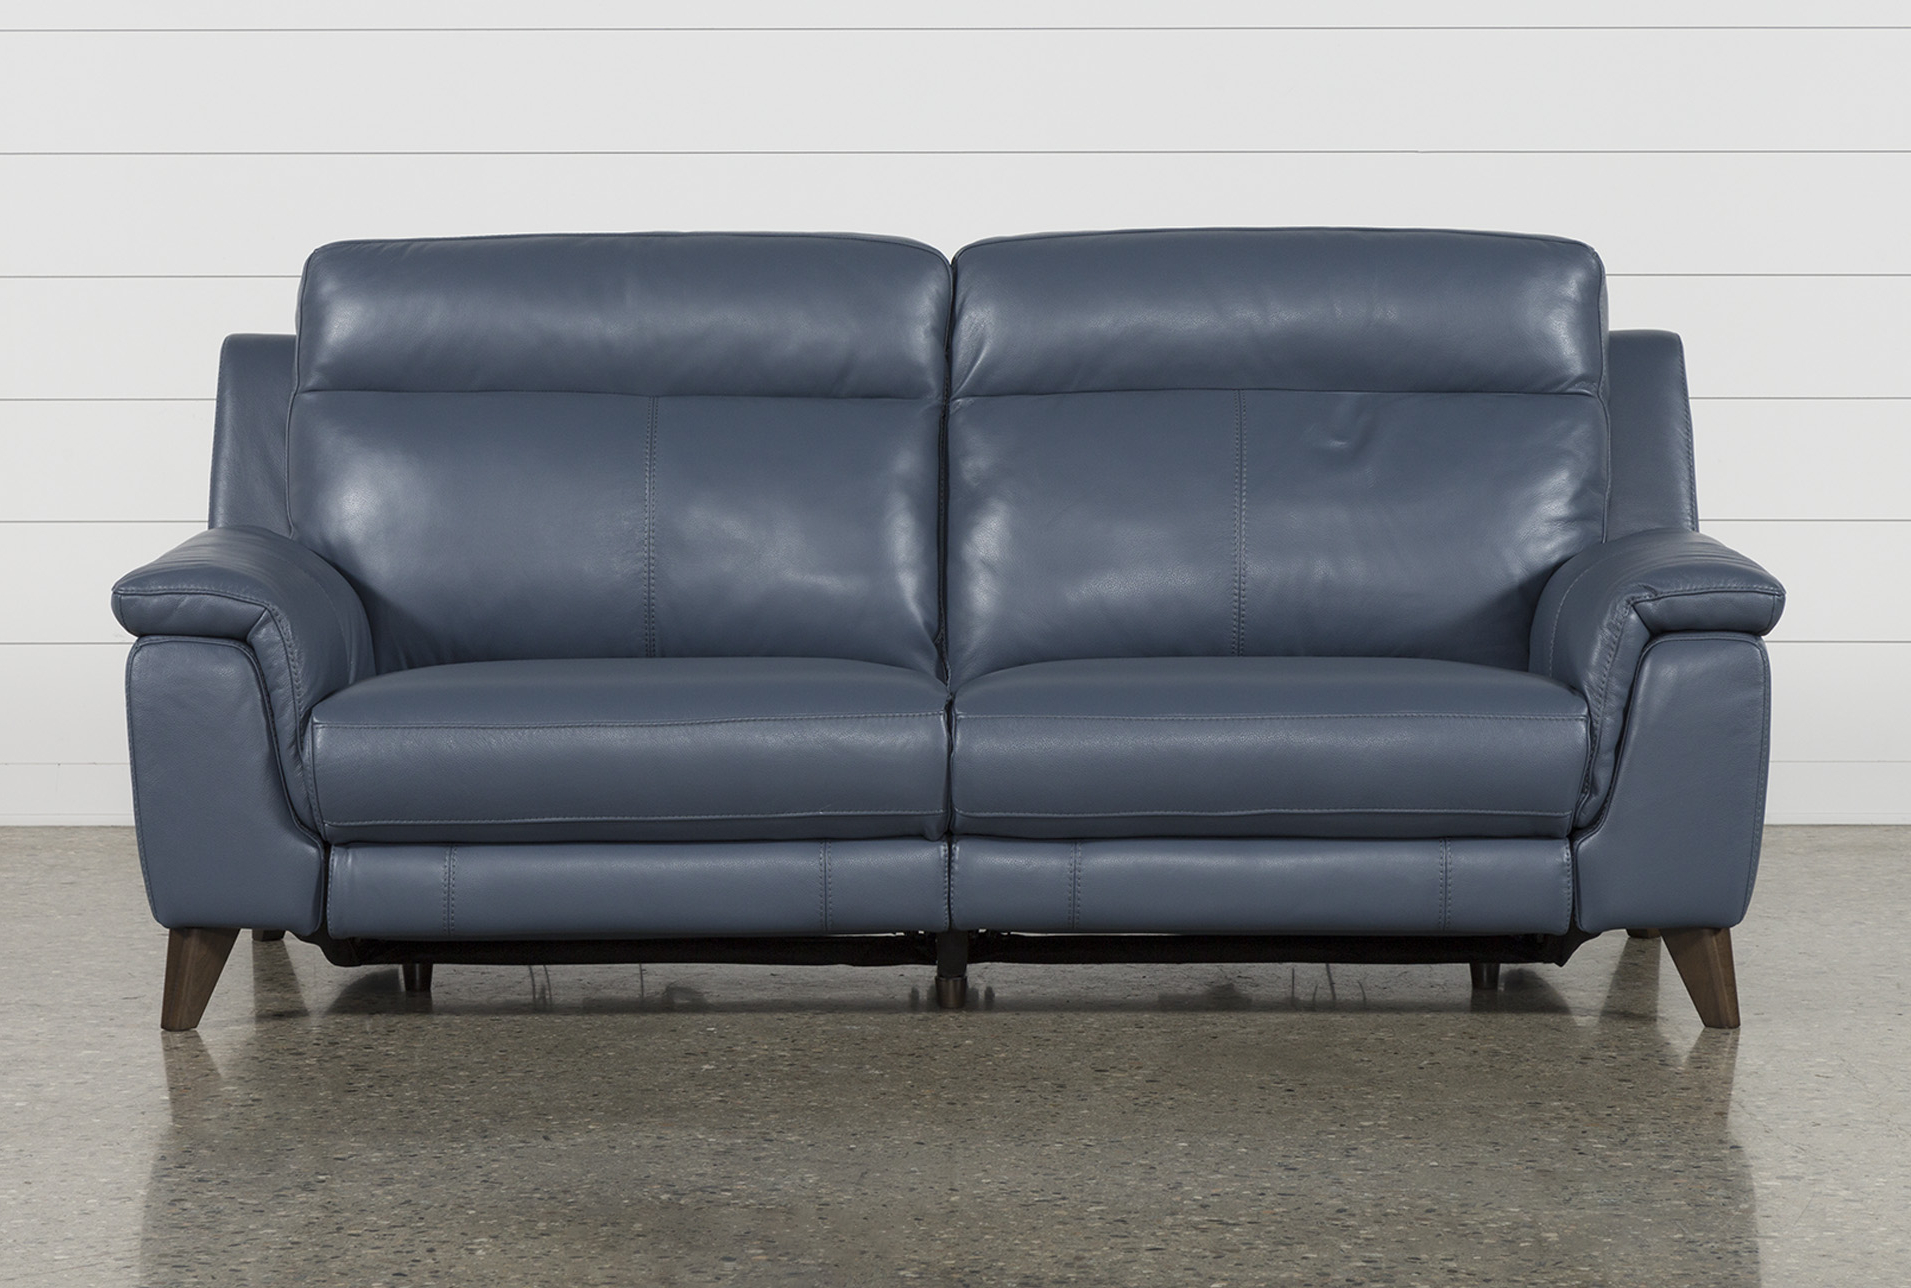 Recent Moana Blue Leather Power Reclining Sofa Chairs With Usb Throughout Moana Blue Leather Dual Power Reclining Sofa With Usb In 2018 (Gallery 3 of 20)